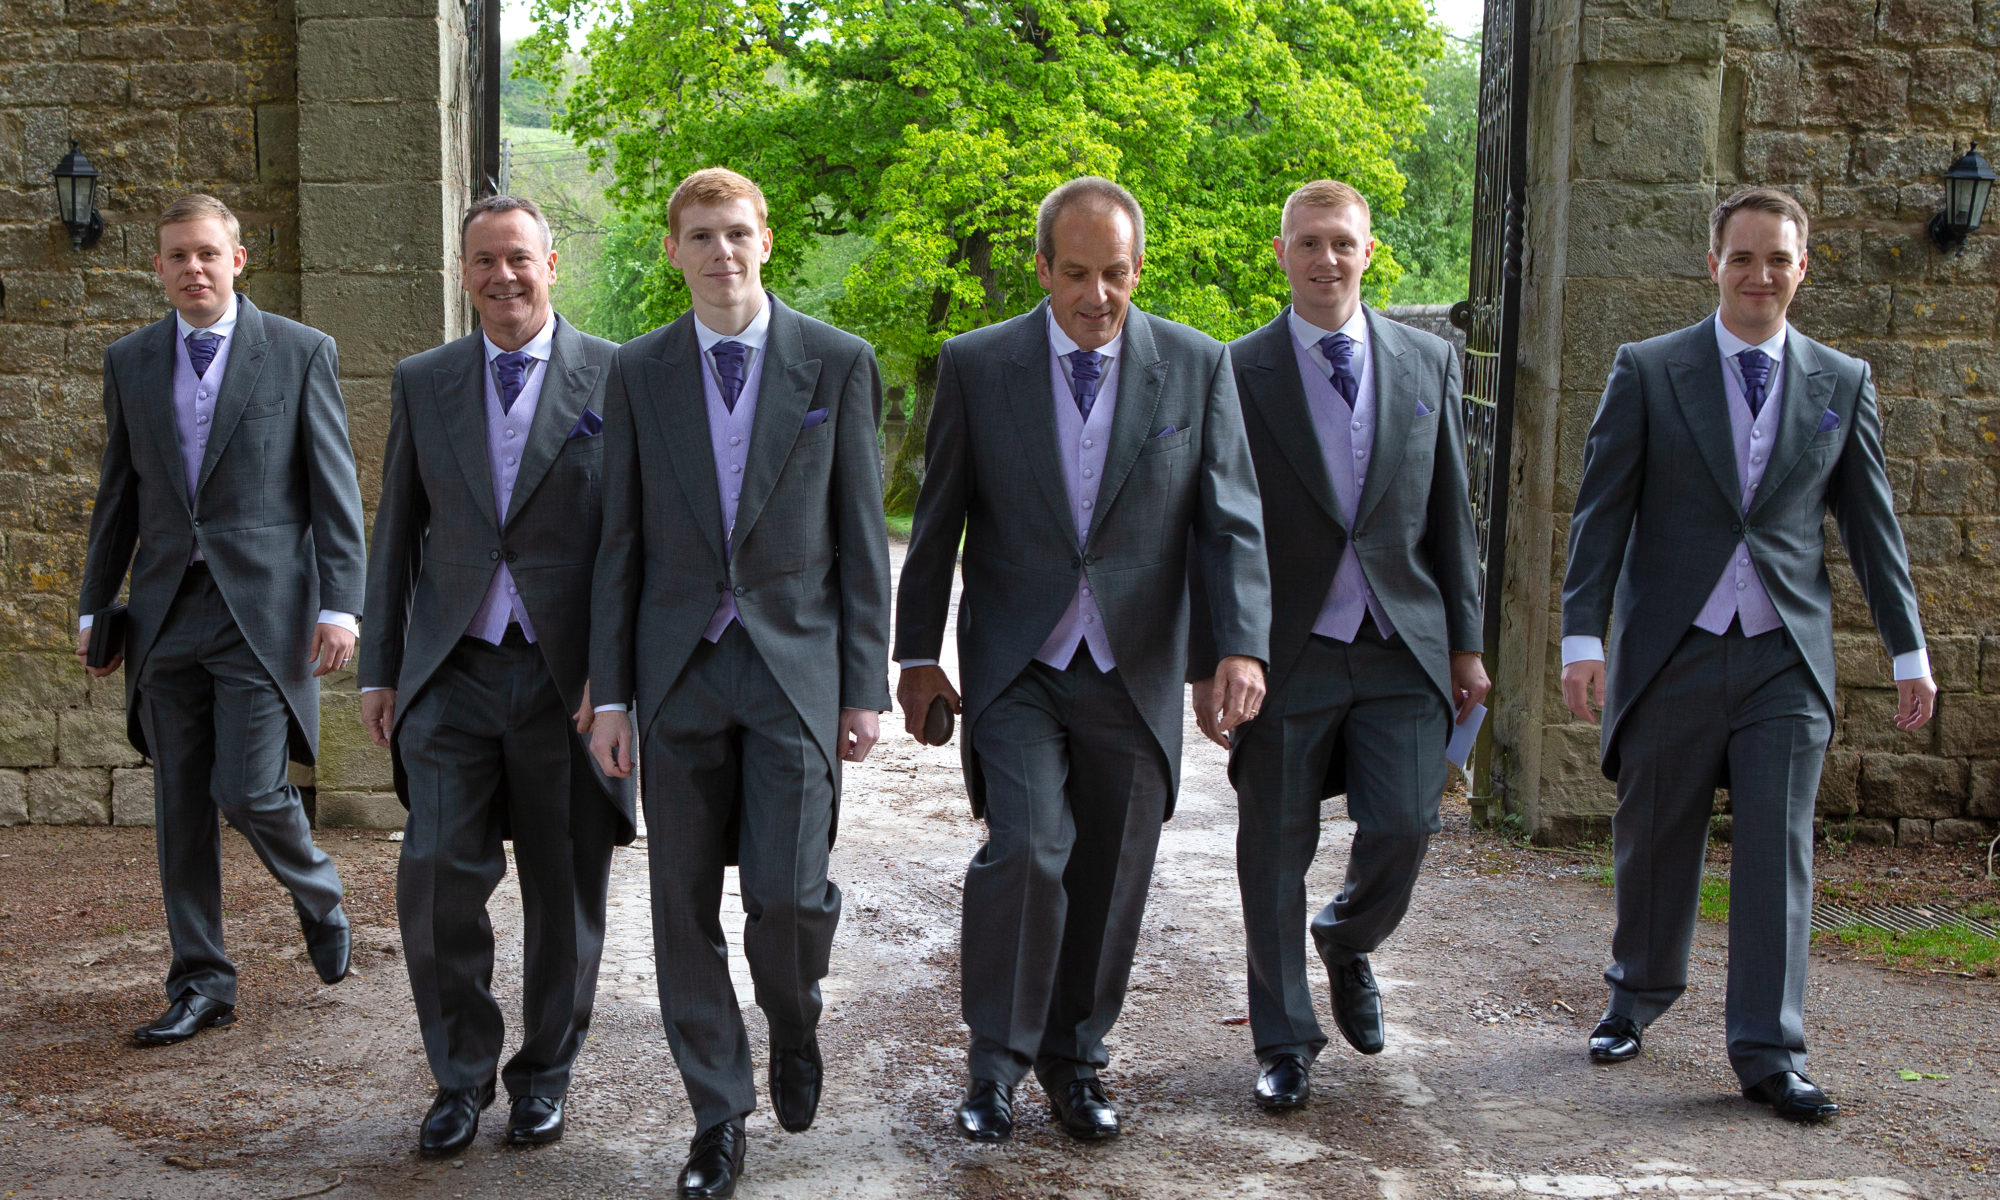 Groomsmen walking up the drive at Clearwell Castle